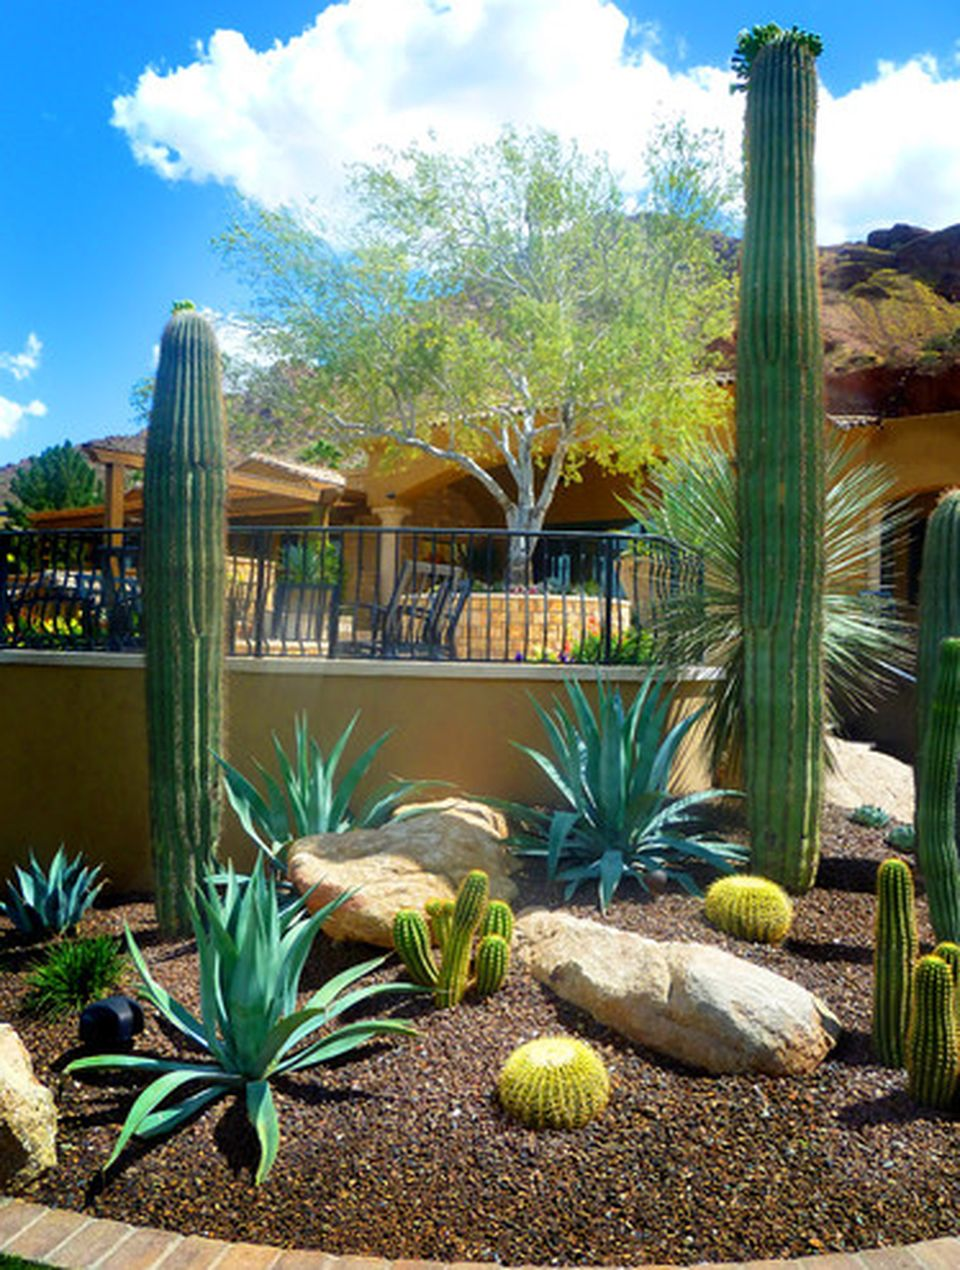 Stunning desert garden ideas for home yard 64